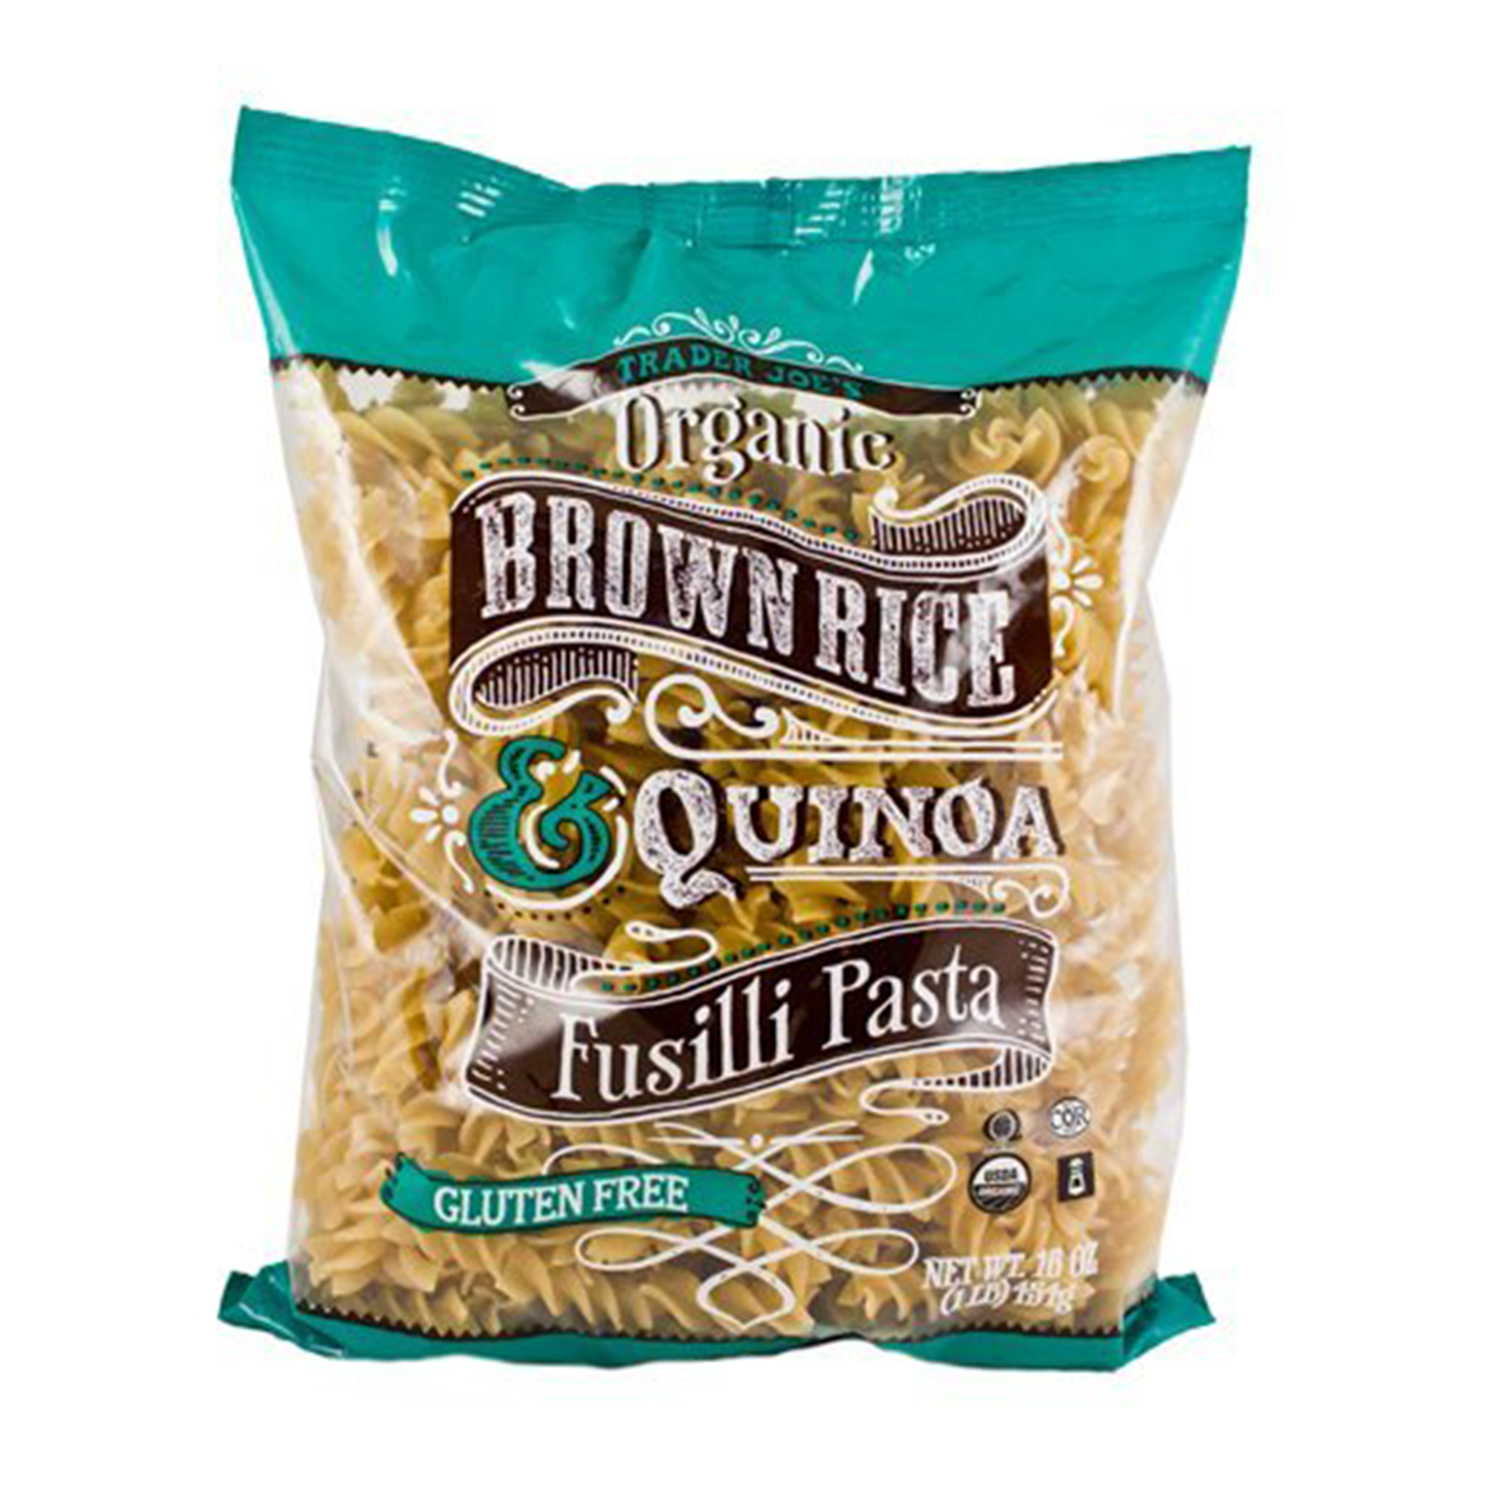 Our favorite brand of gluten-free pasta